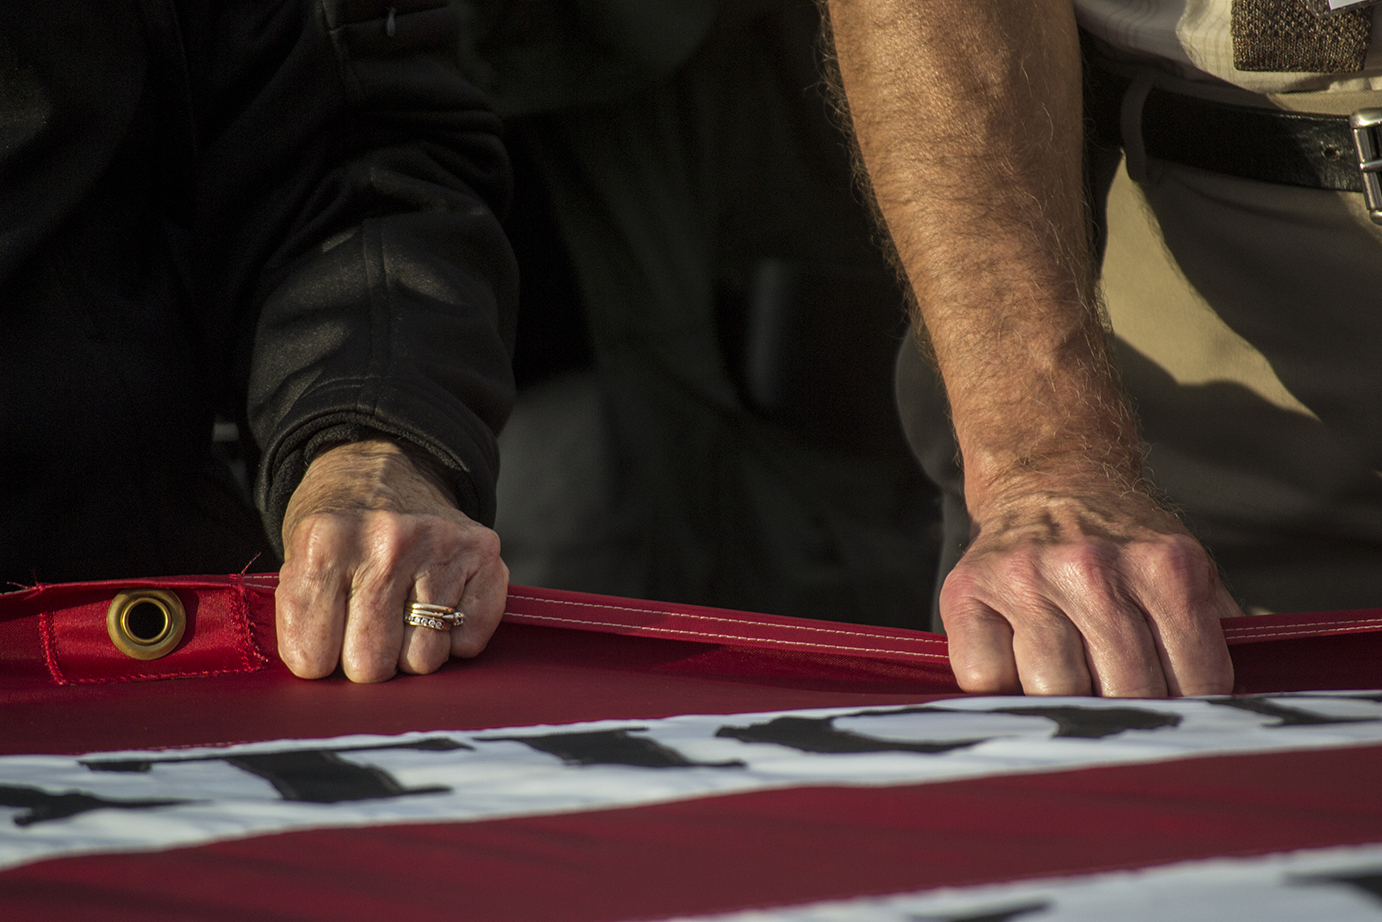 Two visitors to the Flight 93 Memorial in Shanksville, Pennsylvania help to unfold a memorial American Flag that honors the victims of Flight 93. The service was held before a candlelight march and vigil at the memorial on Sept 10, 2014.